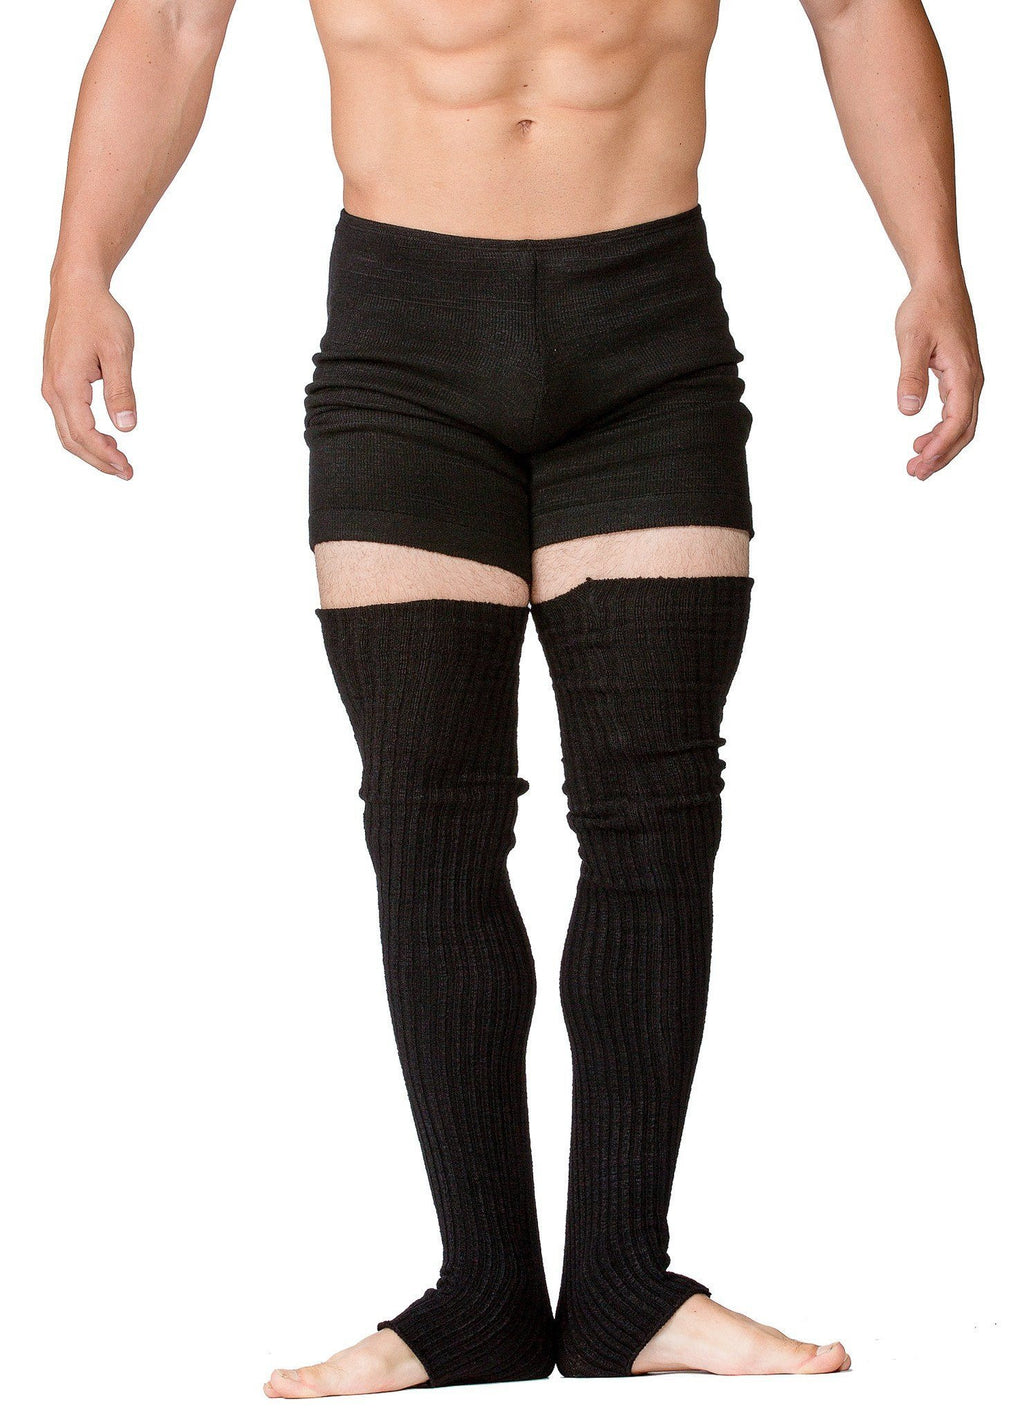 Men's Ballet & Yoga Shorts With Matching 30 Inch Leg Warmers Stretch Knit, Low Rise by KD dance